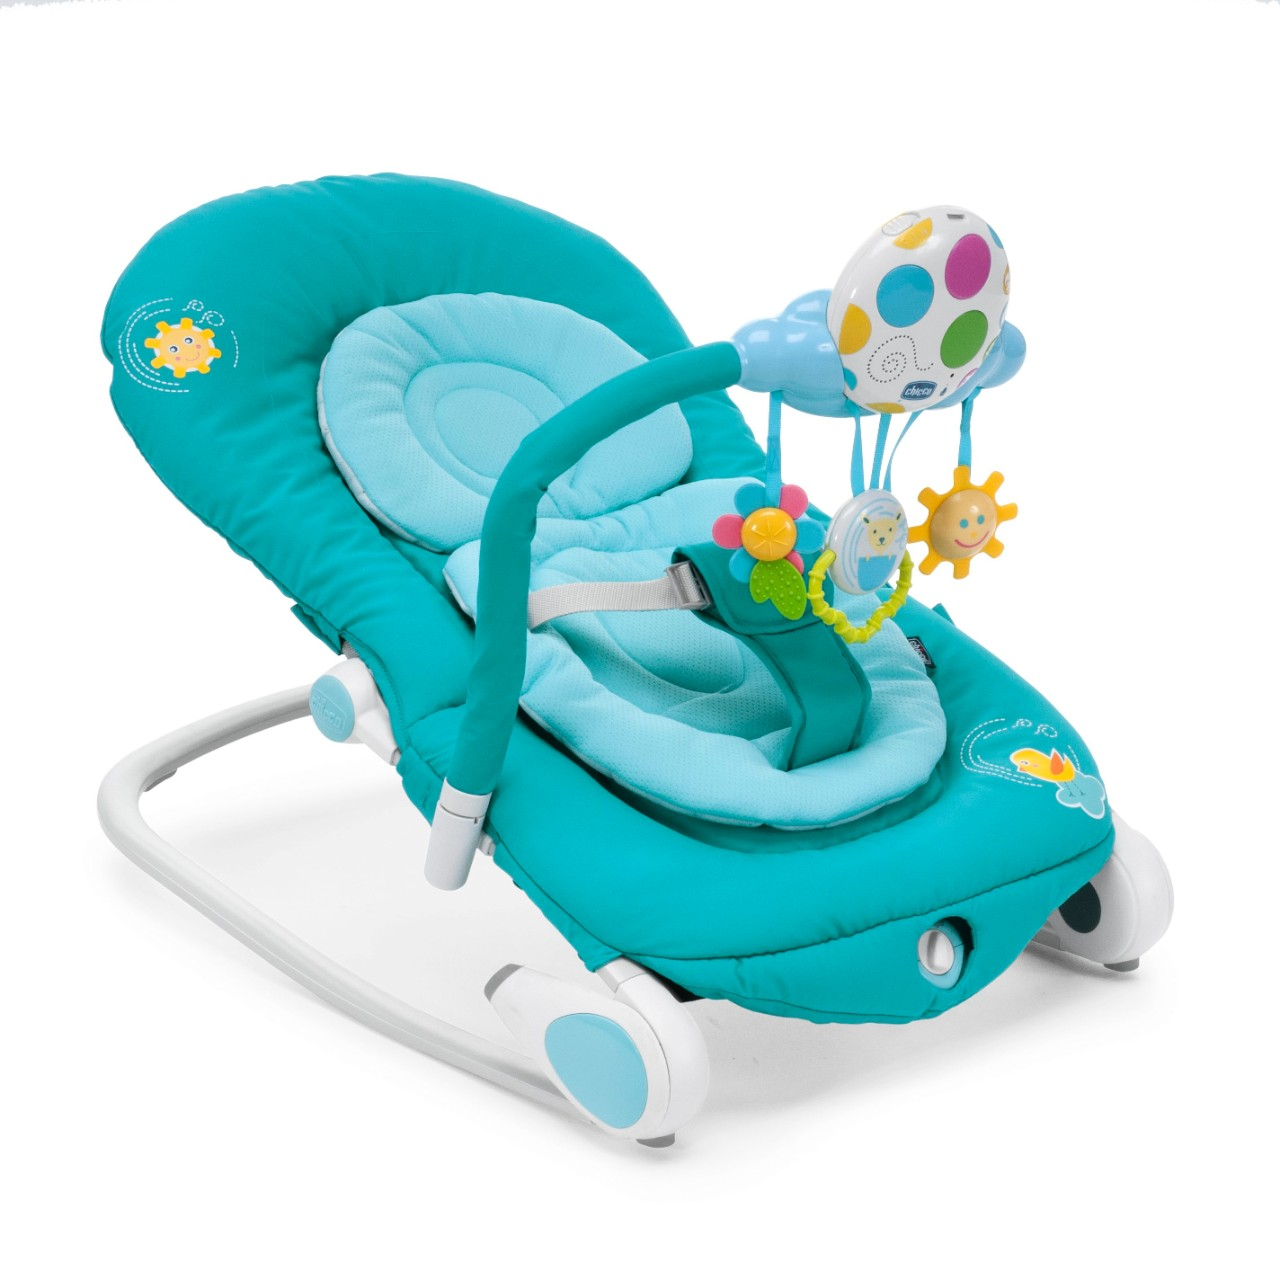 Balloon Bouncer | Sleeptime and Relaxation | Official Chicco.co.uk website - Chicco PNG